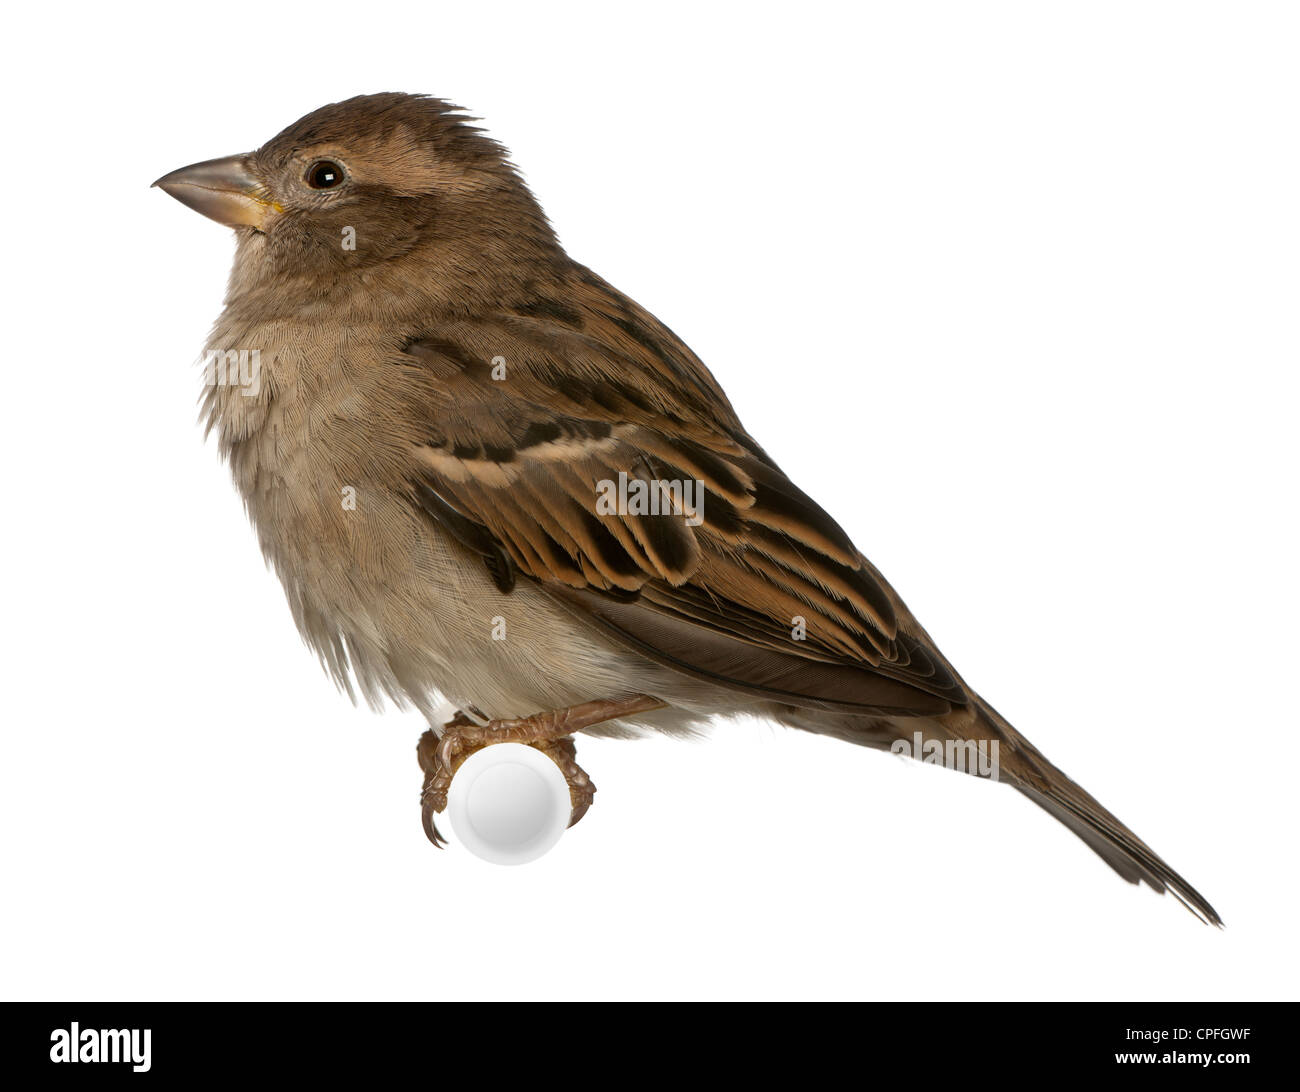 Female House Sparrow, Passer domesticus, 5 months old, perching against white background - Stock Image